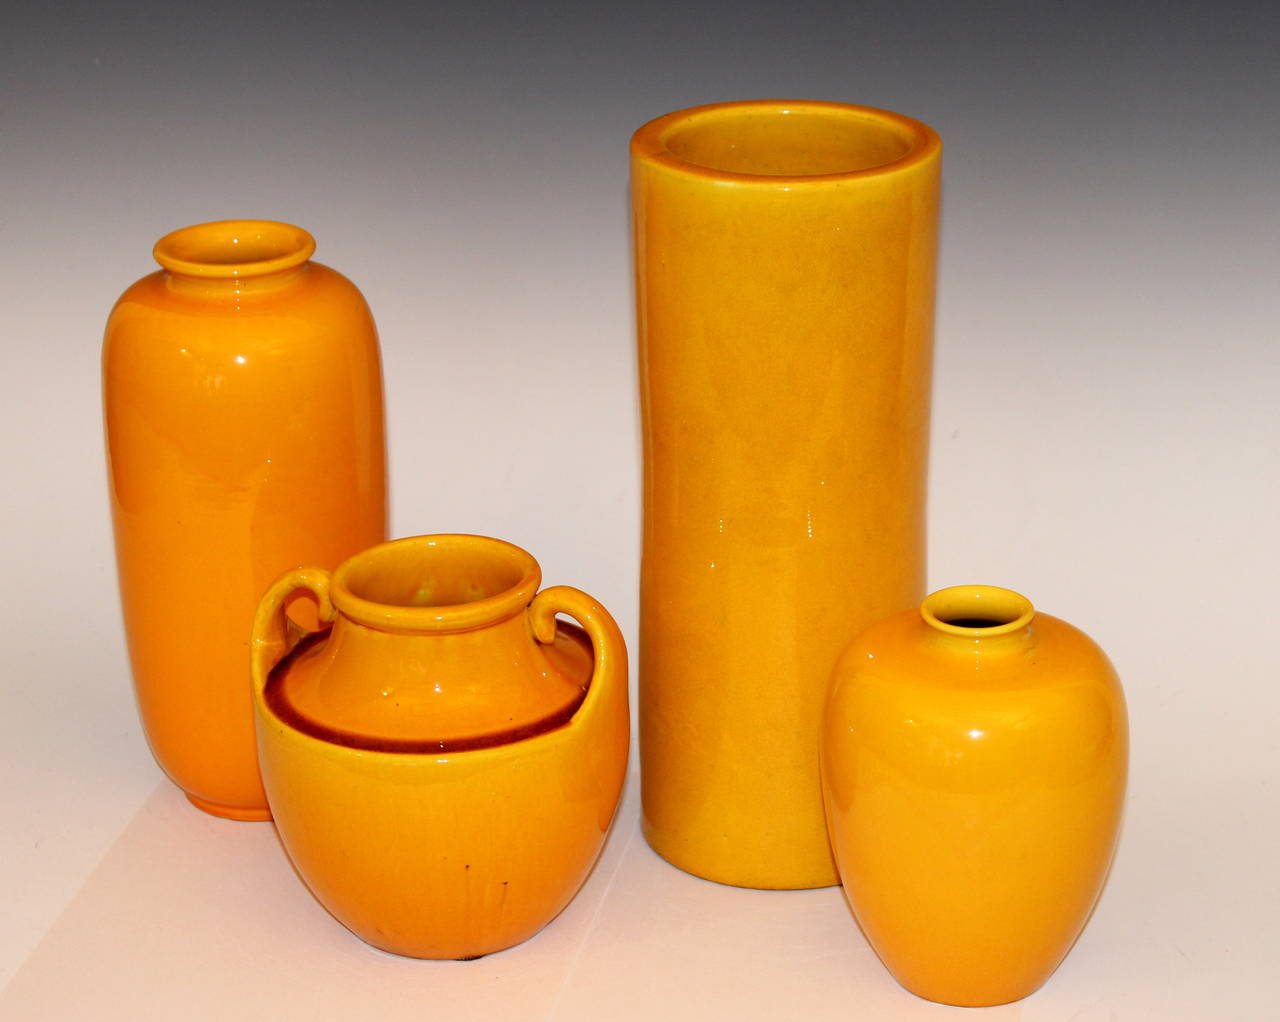 Vintage awaji pottery vases in translucent golden yellow glaze at art deco vintage awaji pottery vases in translucent golden yellow glaze for sale reviewsmspy